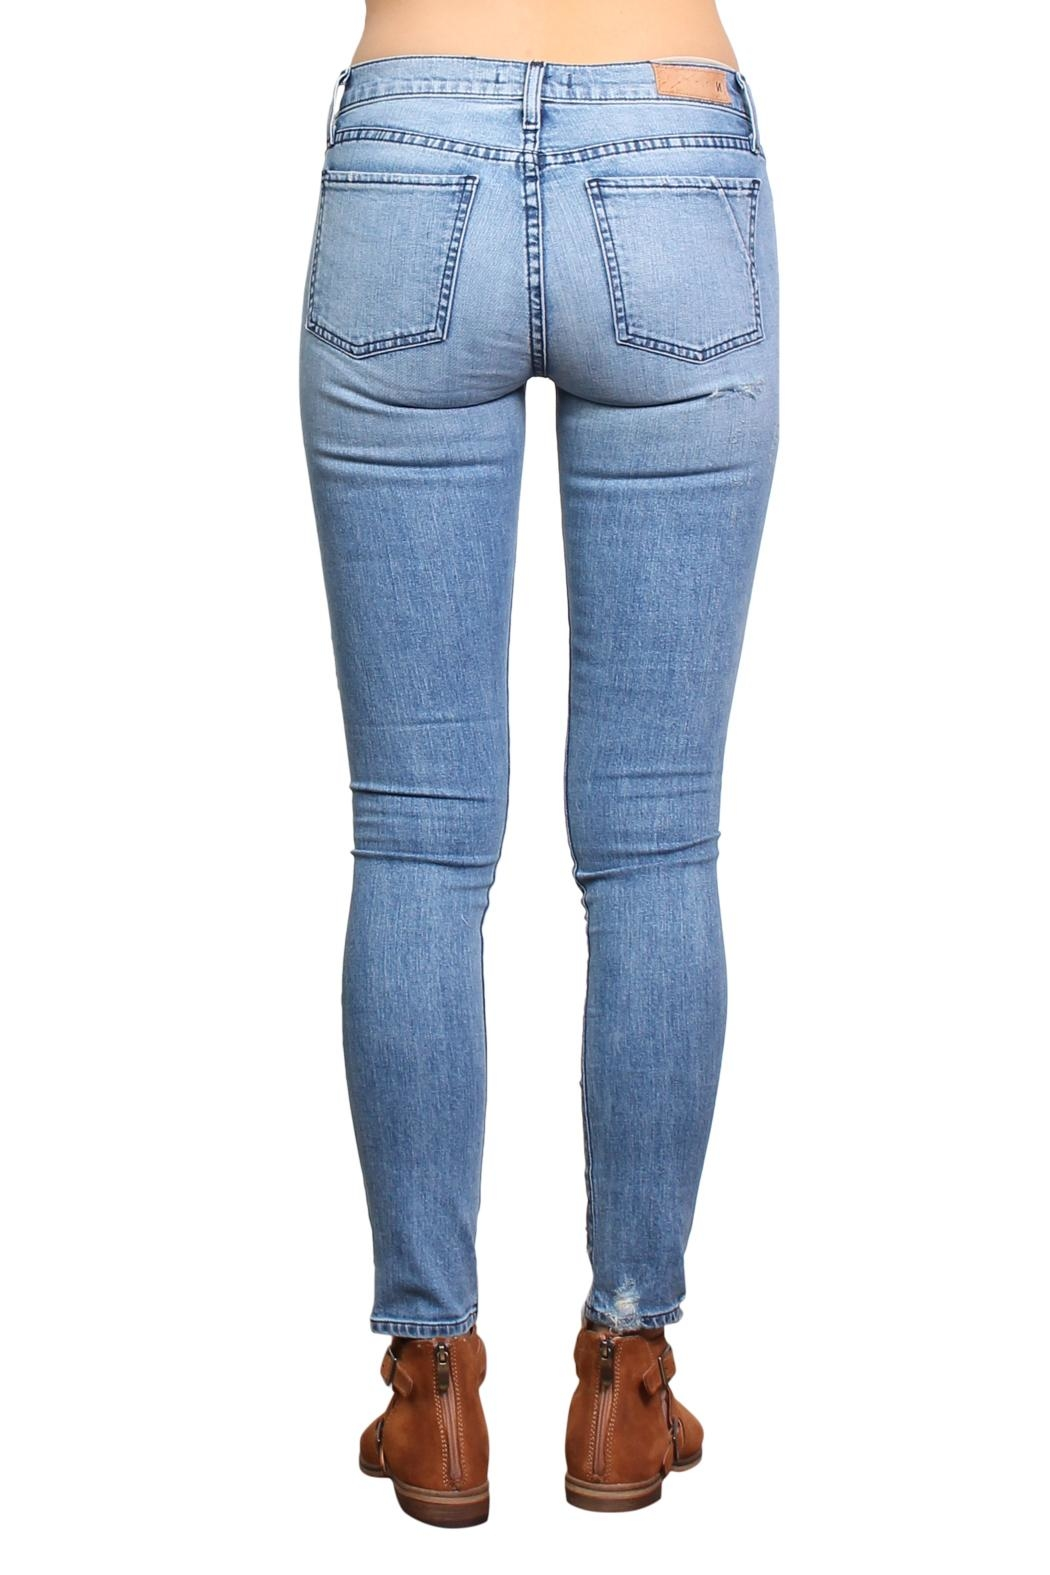 Michelle by Commune London Skinny Jeans - Back Cropped Image